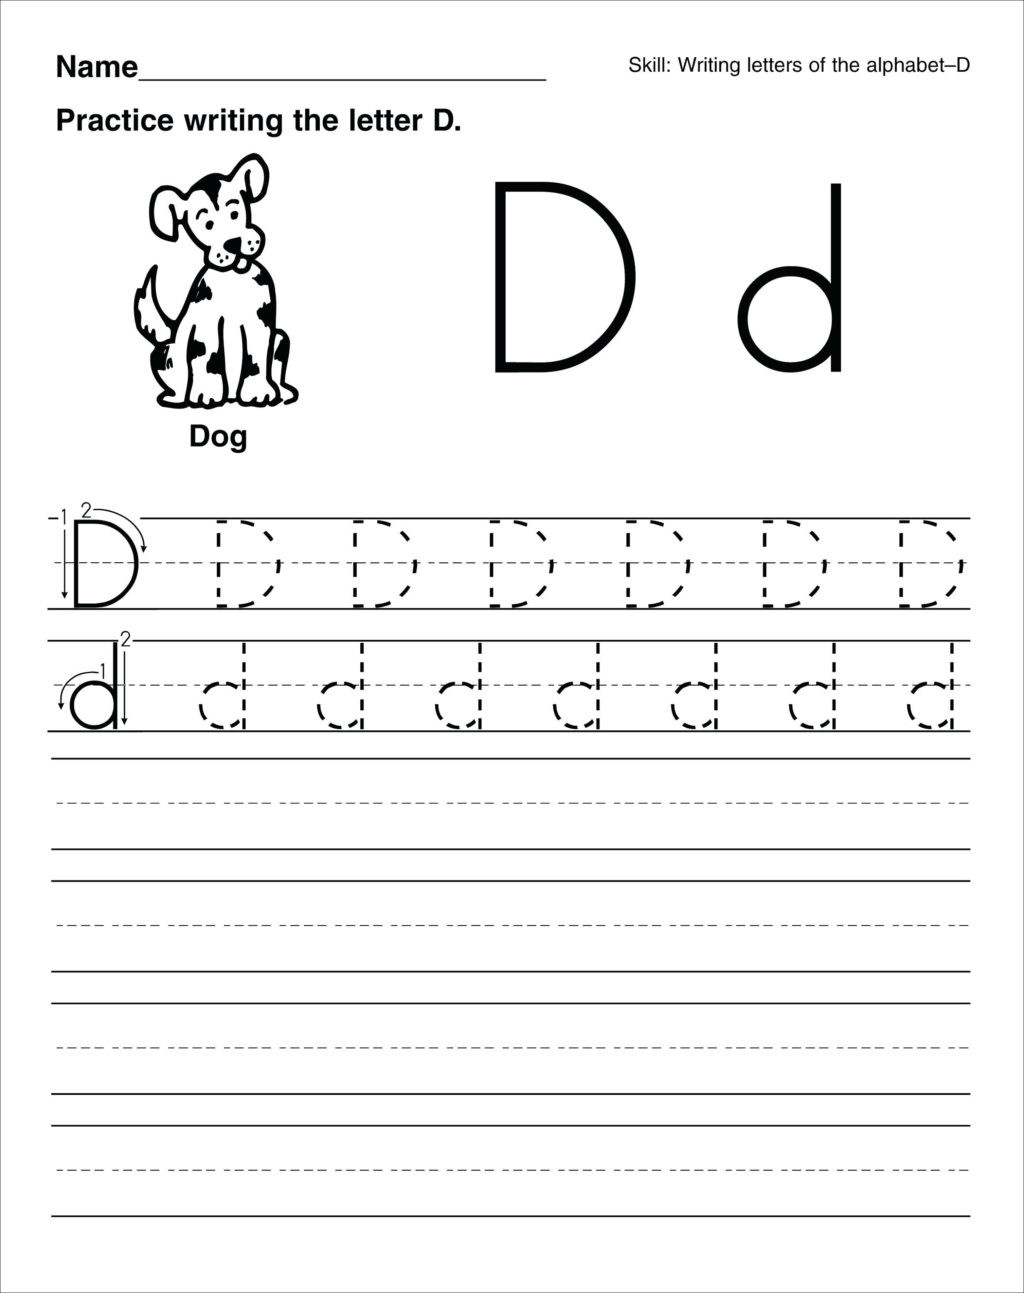 Letter D Worksheet Preschool Worksheet astonishingorksheets for Preschool Free